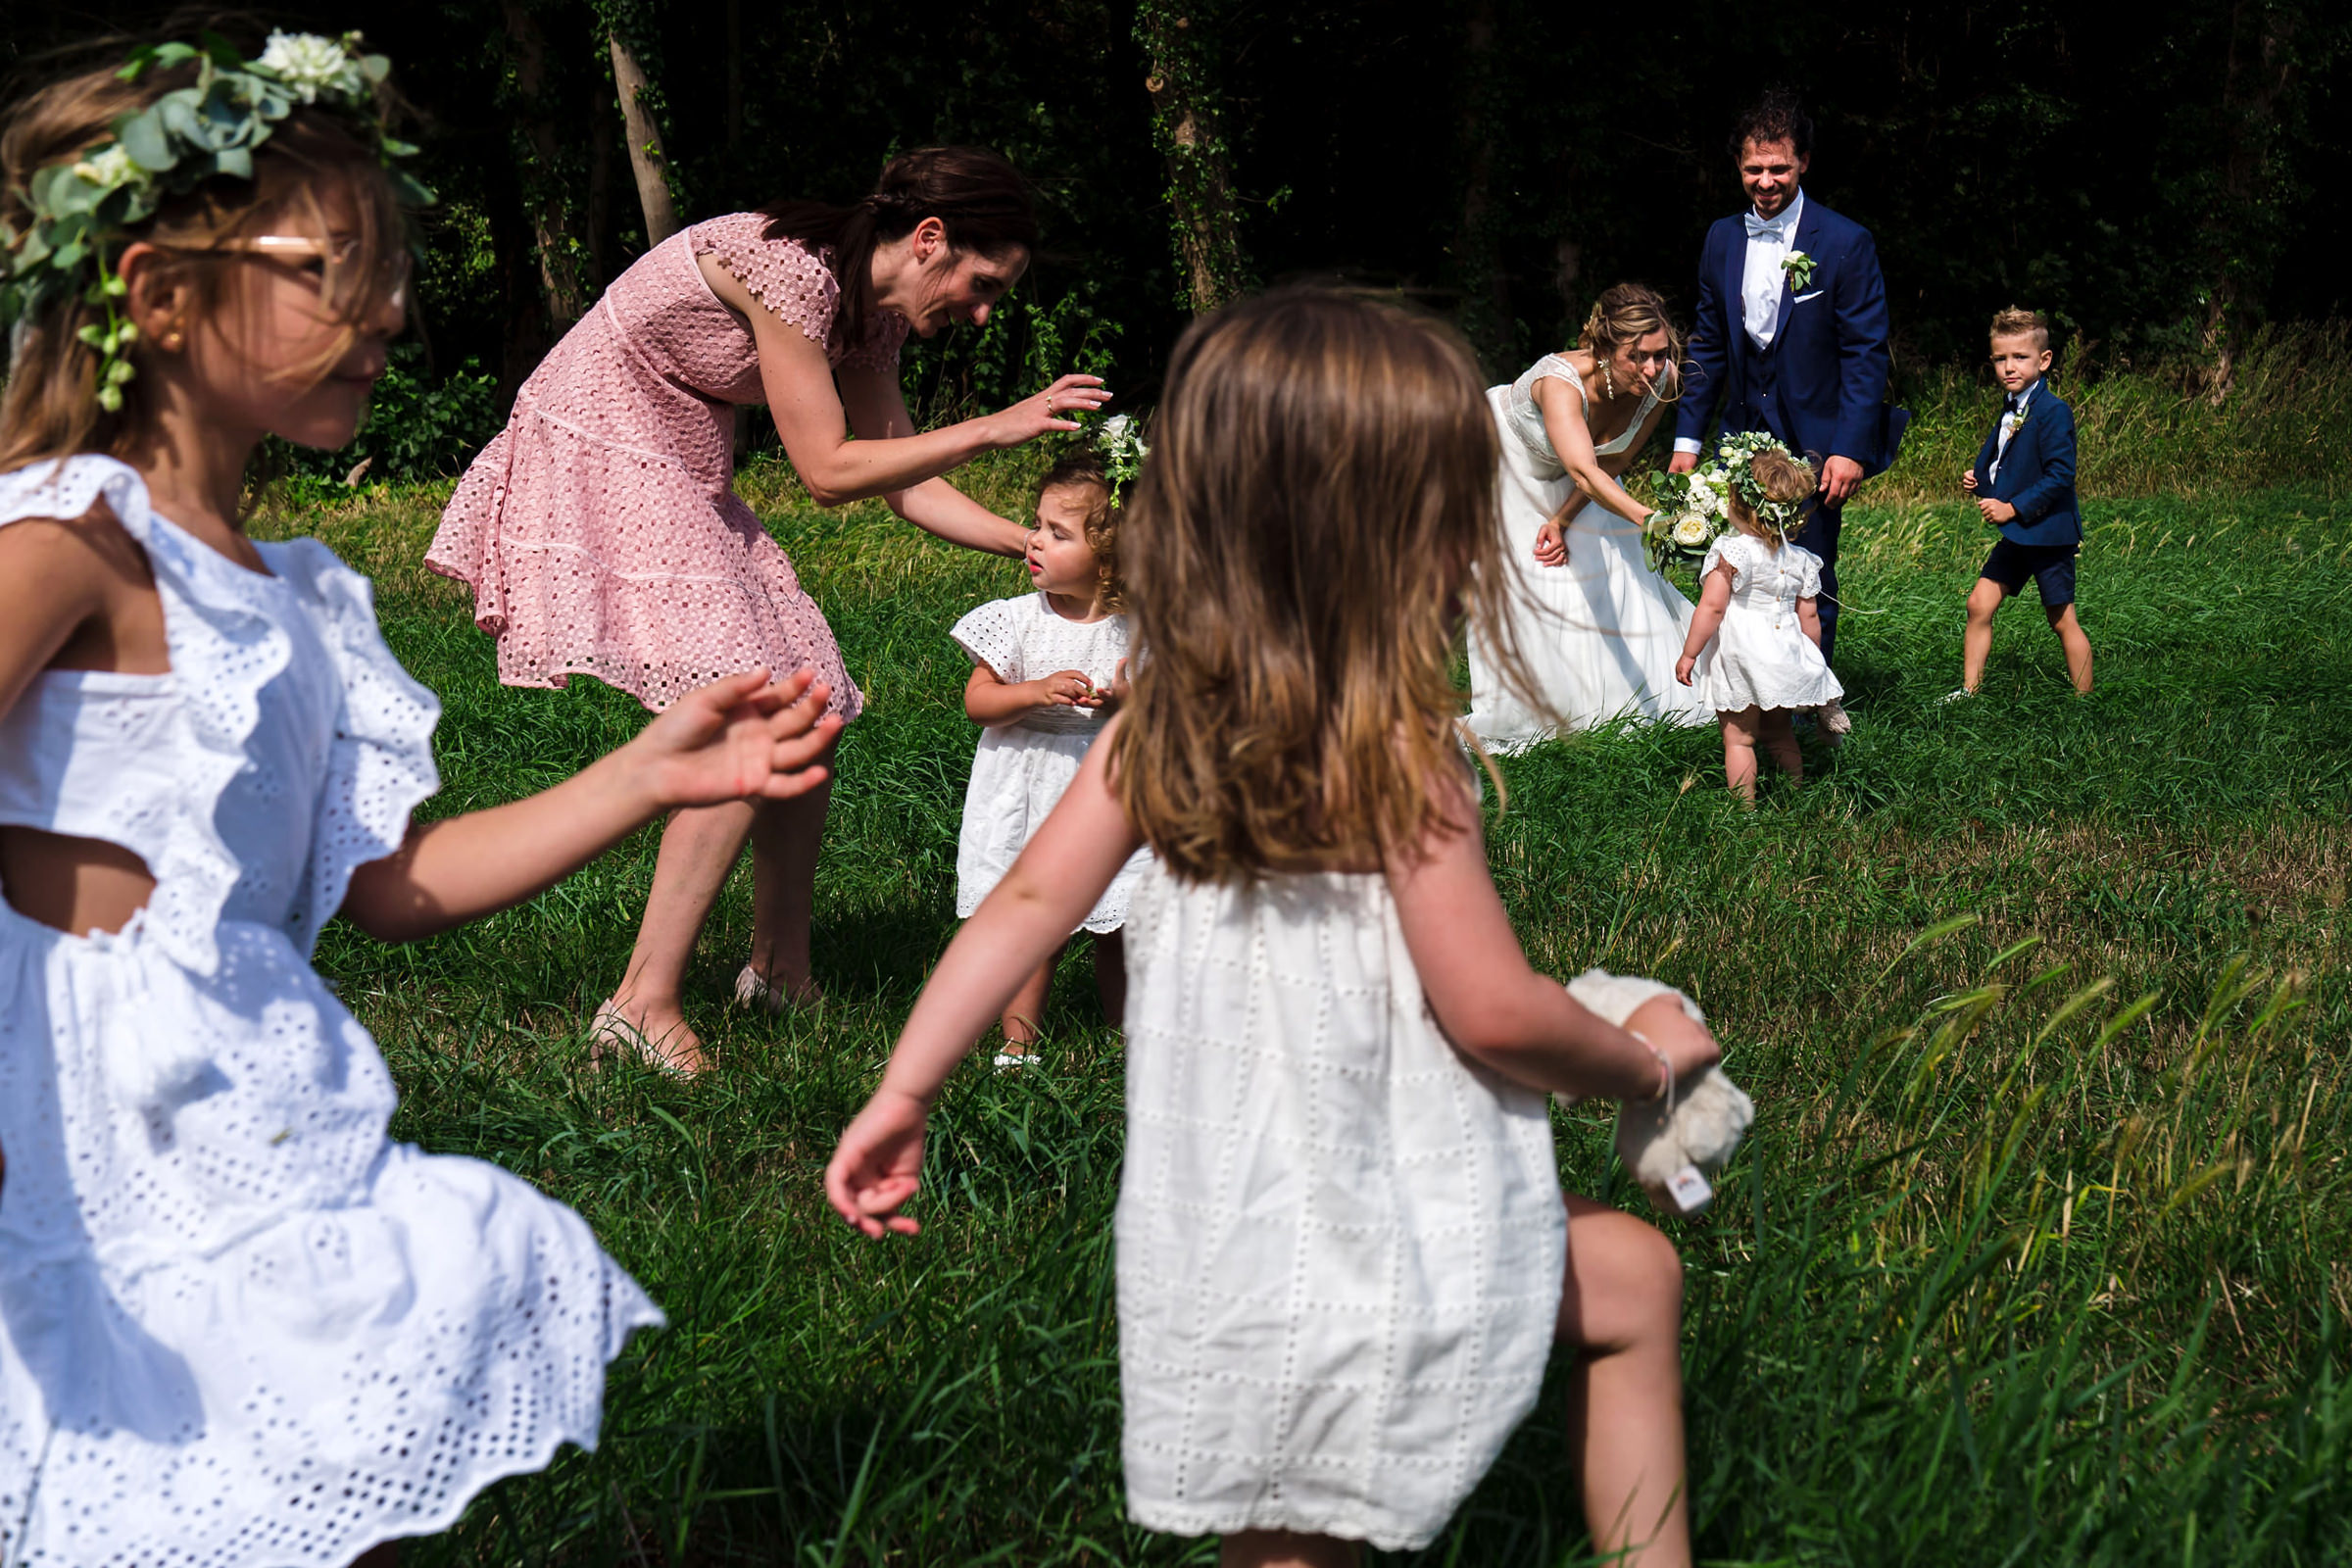 Flower girls and couple play in field, photo by Philippe Swiggers